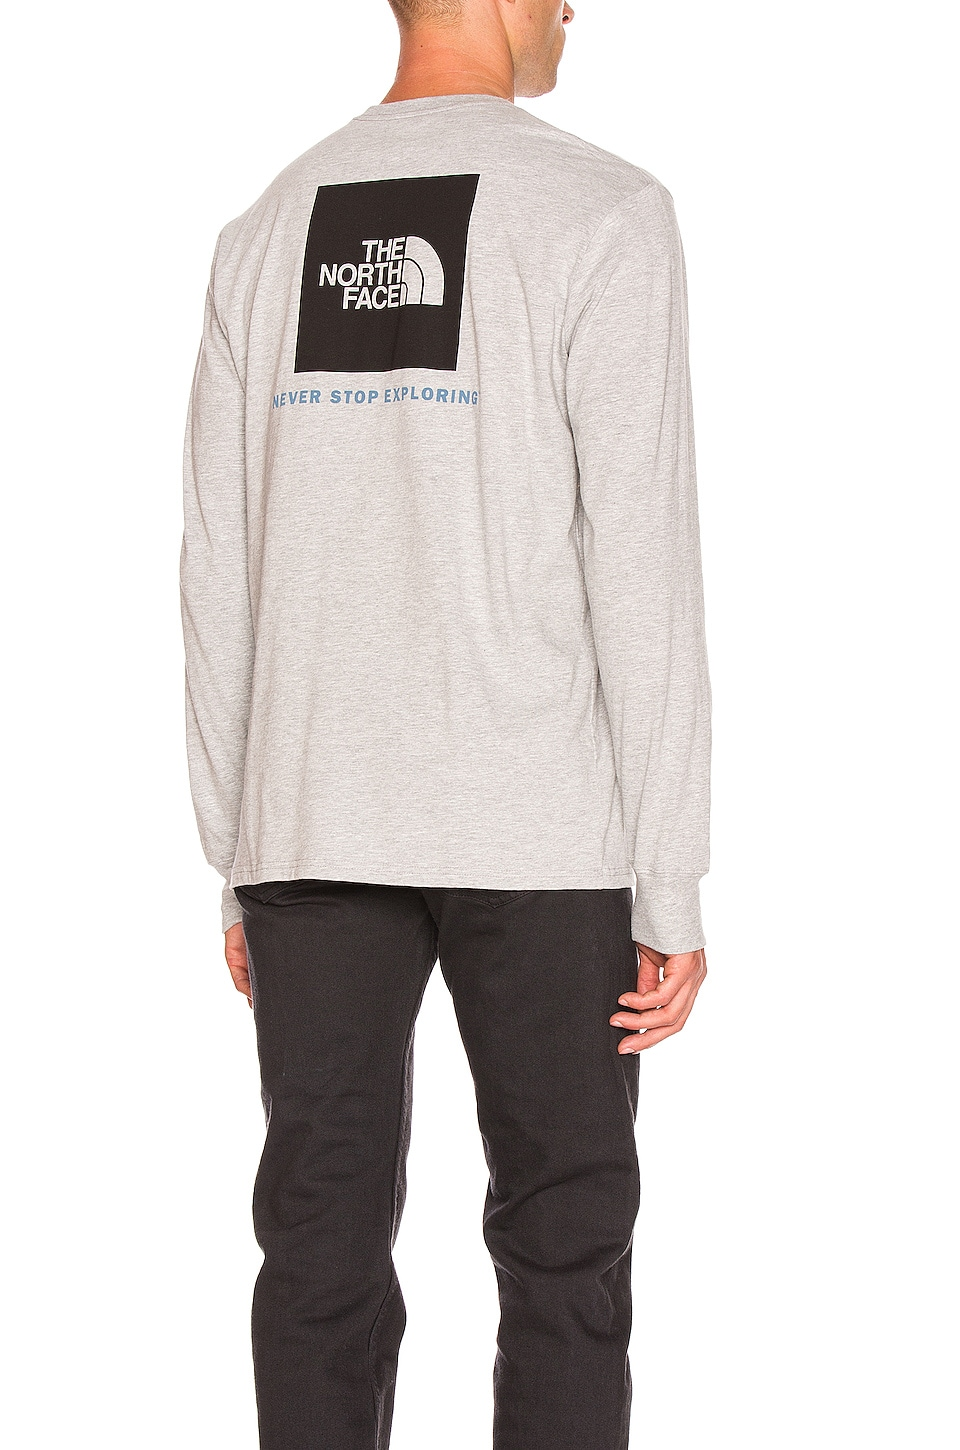 The North Face L/S Red Box Tee in TNF Light Grey Heather & TNF Black